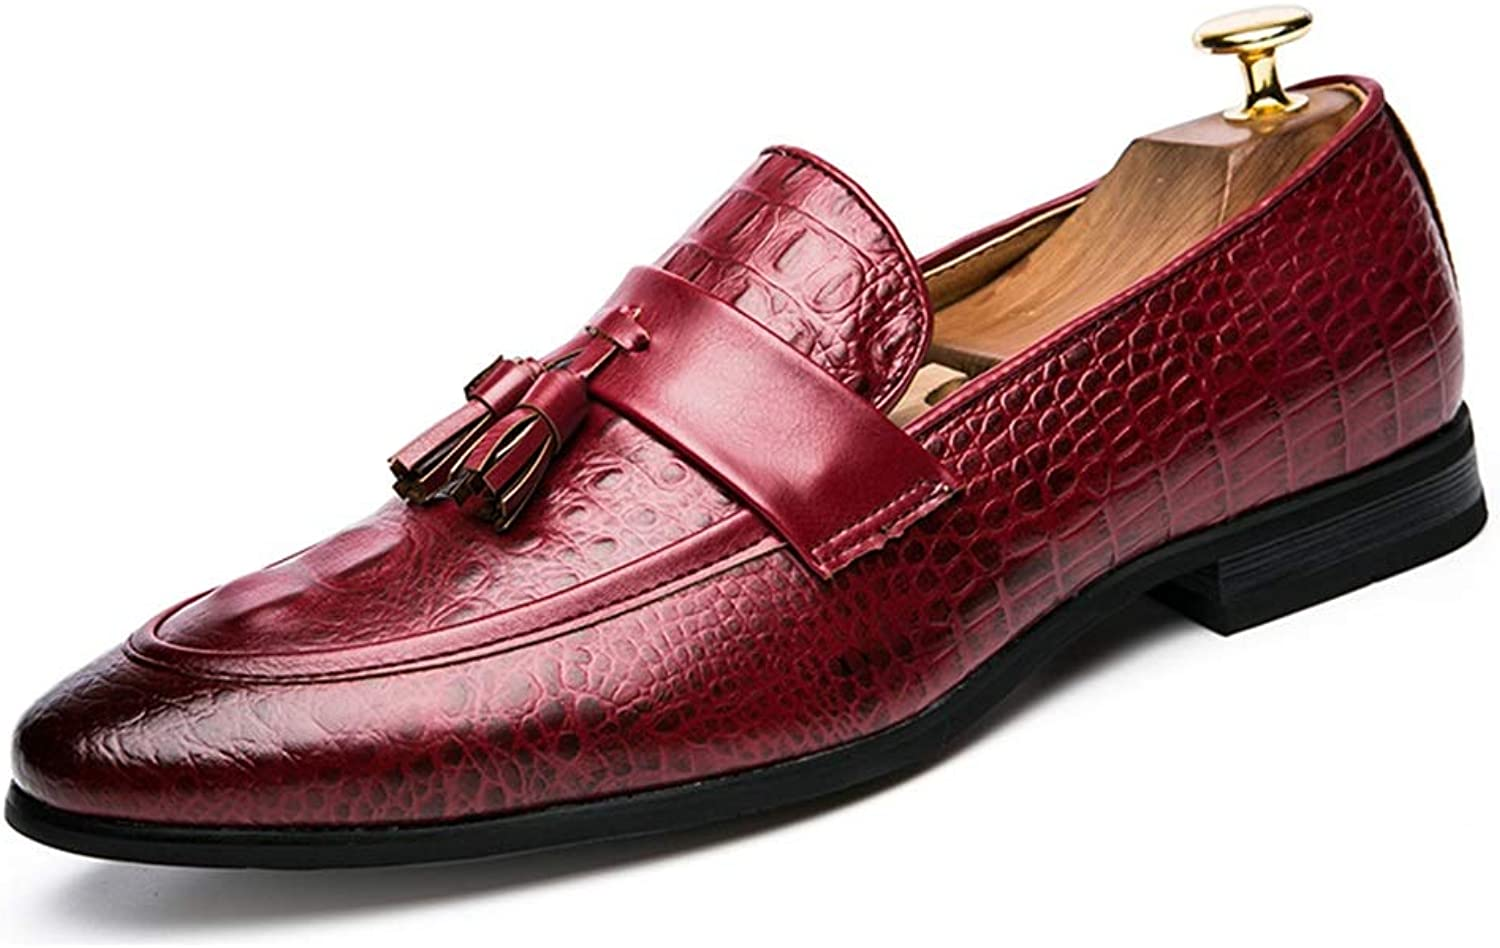 CHENXD shoes, Men's Fashion Business Oxford Casual Tassel Crocodile Pattern Slip On Classic Comfortable Big Size Formal shoes